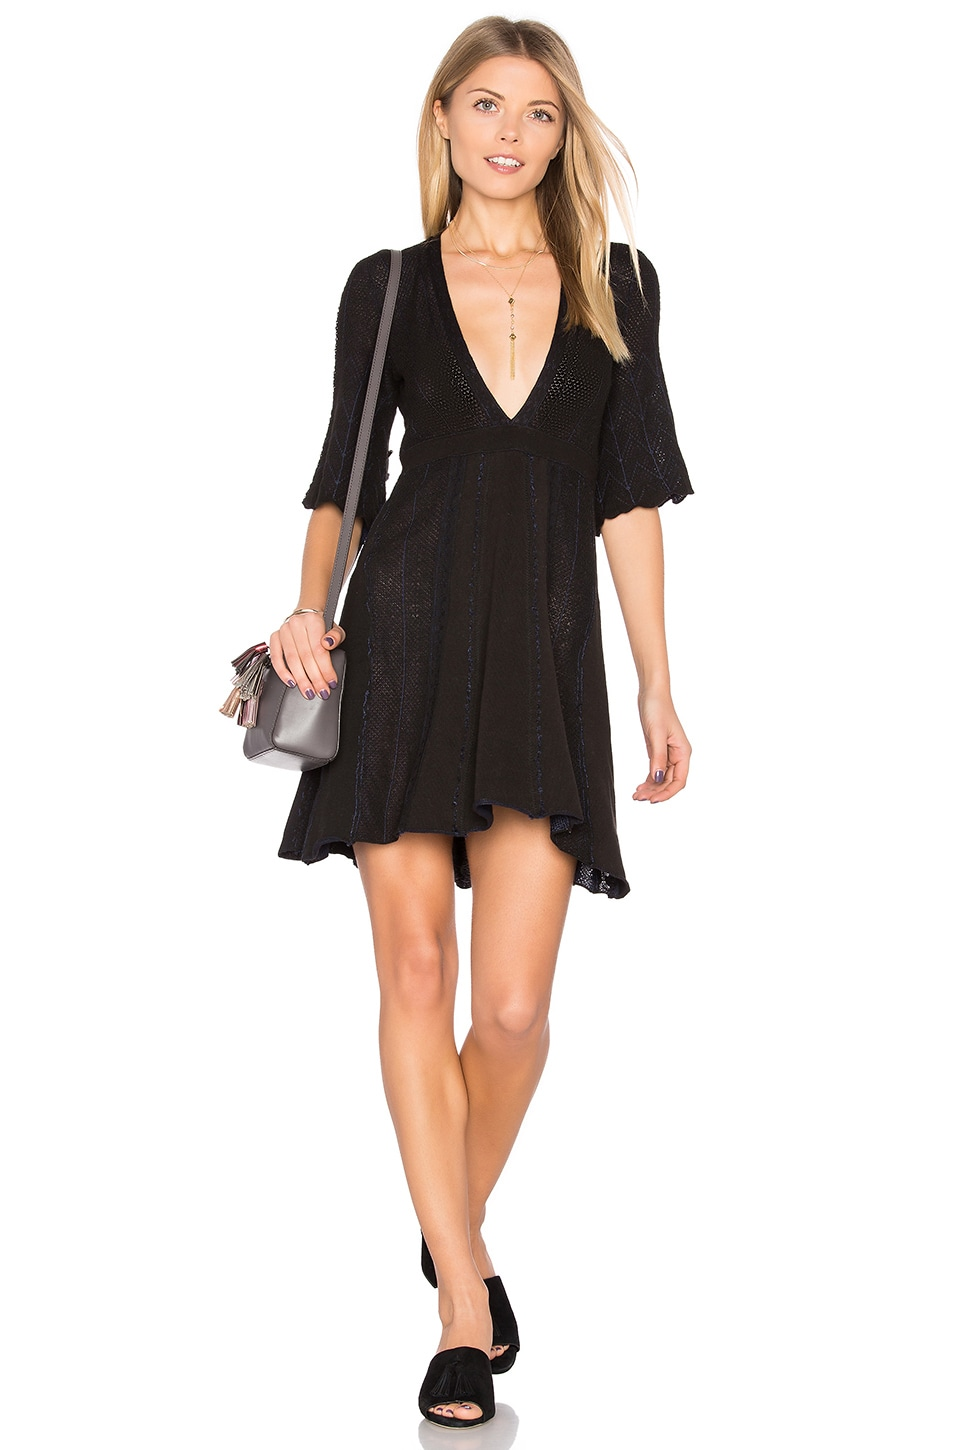 Find Your Love Sweater Mini Dress by Free People